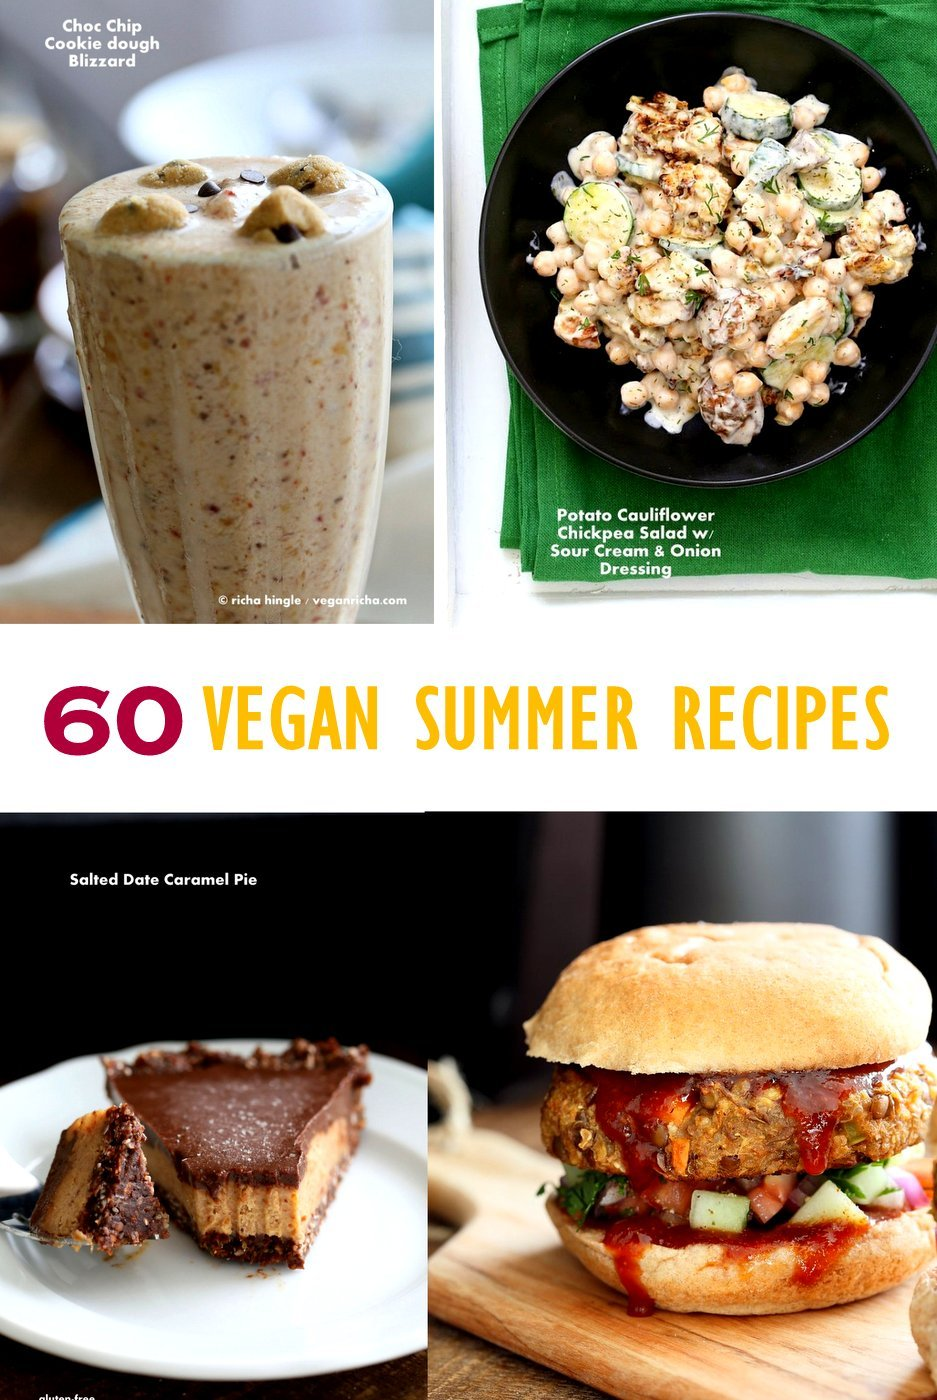 Vegan Summer Recipes for Barbecue, Grill, Picnics. Grill-able Burgers, filling Salads, Drinks, desserts, July 4th cookout menu. Summer Produce Recipes. Vegan Vegetarian Grilled Recipes. Vegan BBQ. | VeganRicha.com